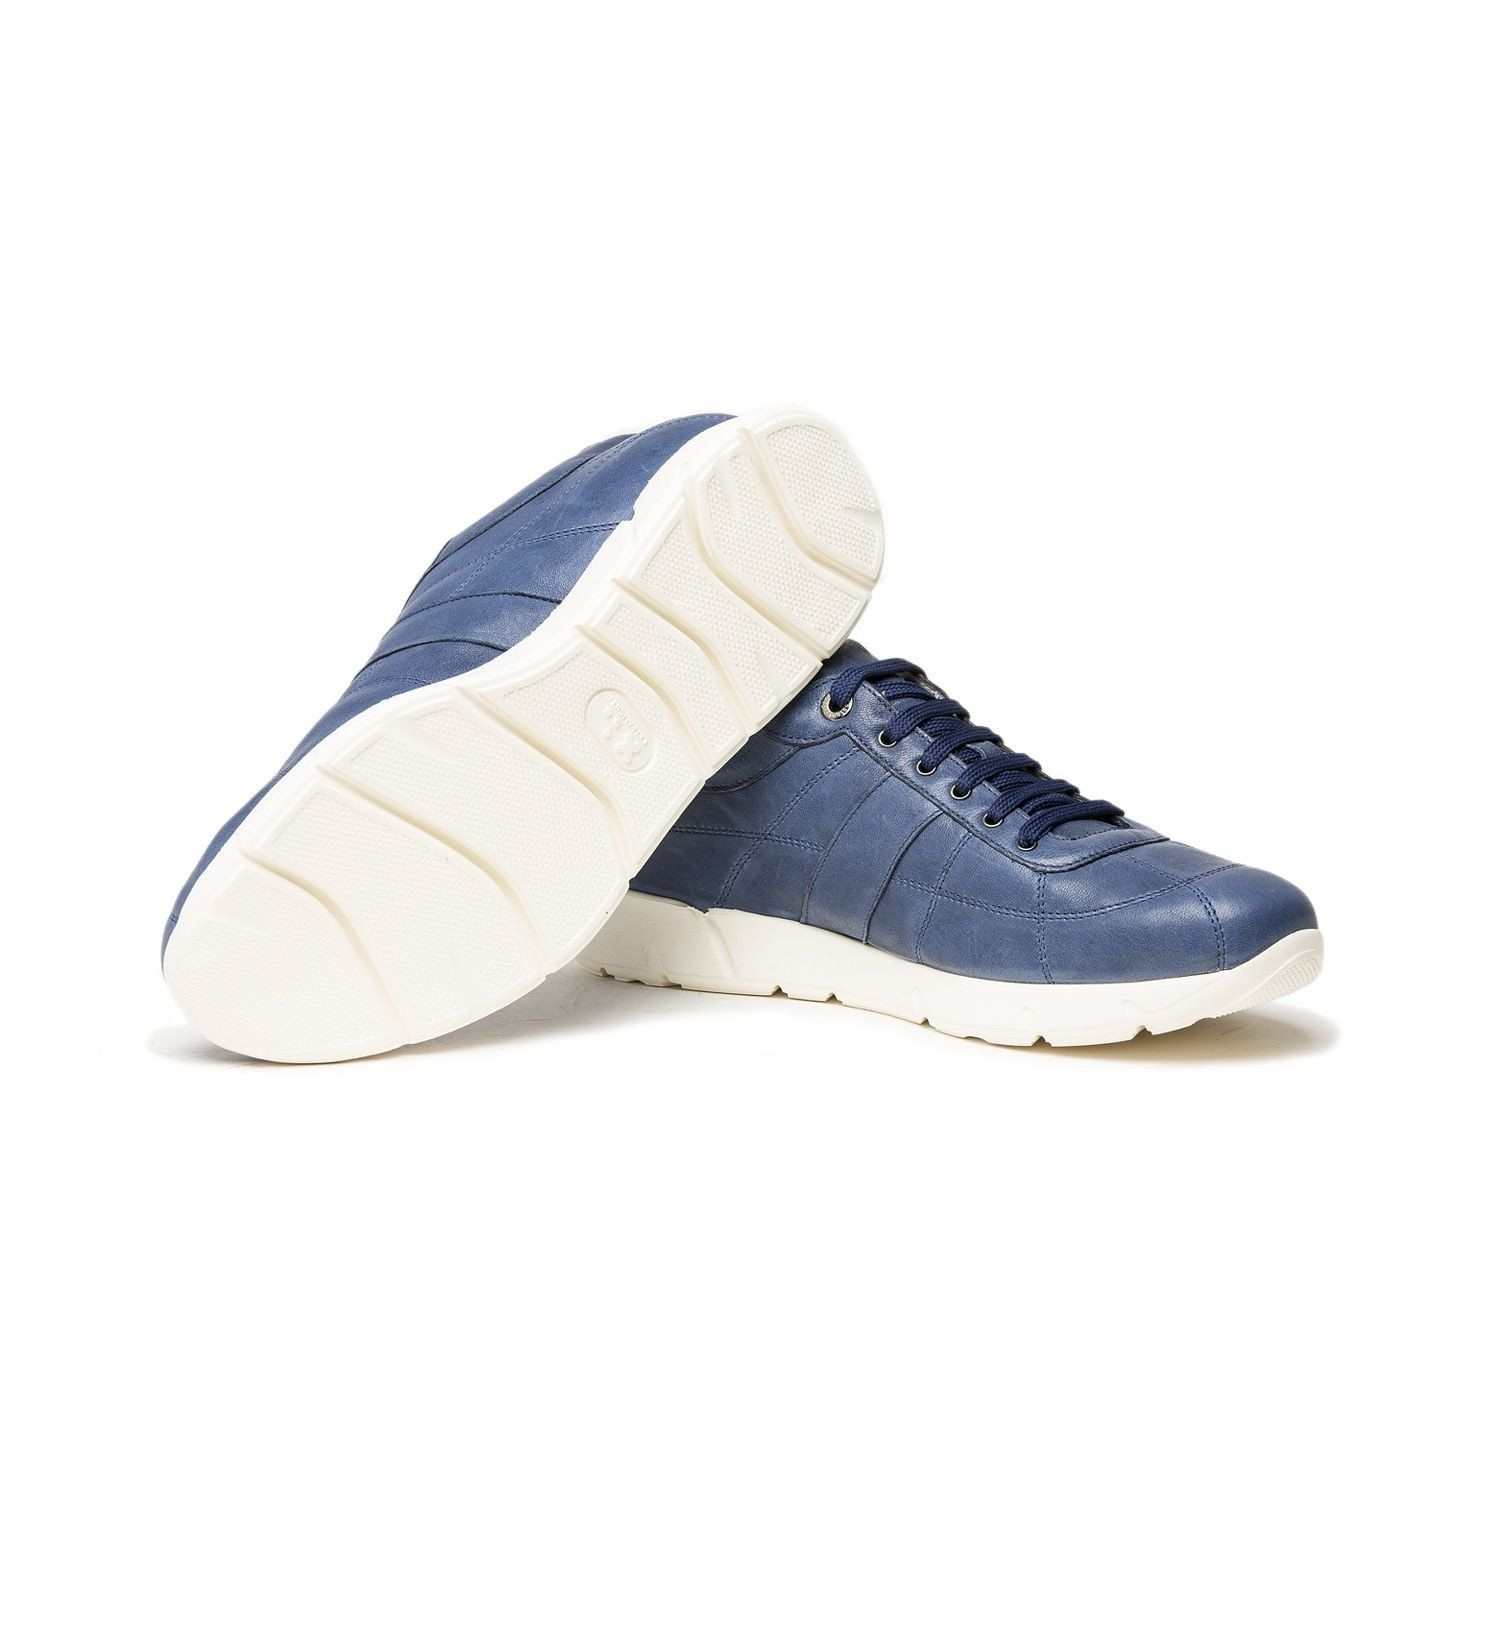 ULTRA LIGHTWEIGHT SNEAKER IN LEATHER,SHOES,A.TESTONI, | GentRow.com